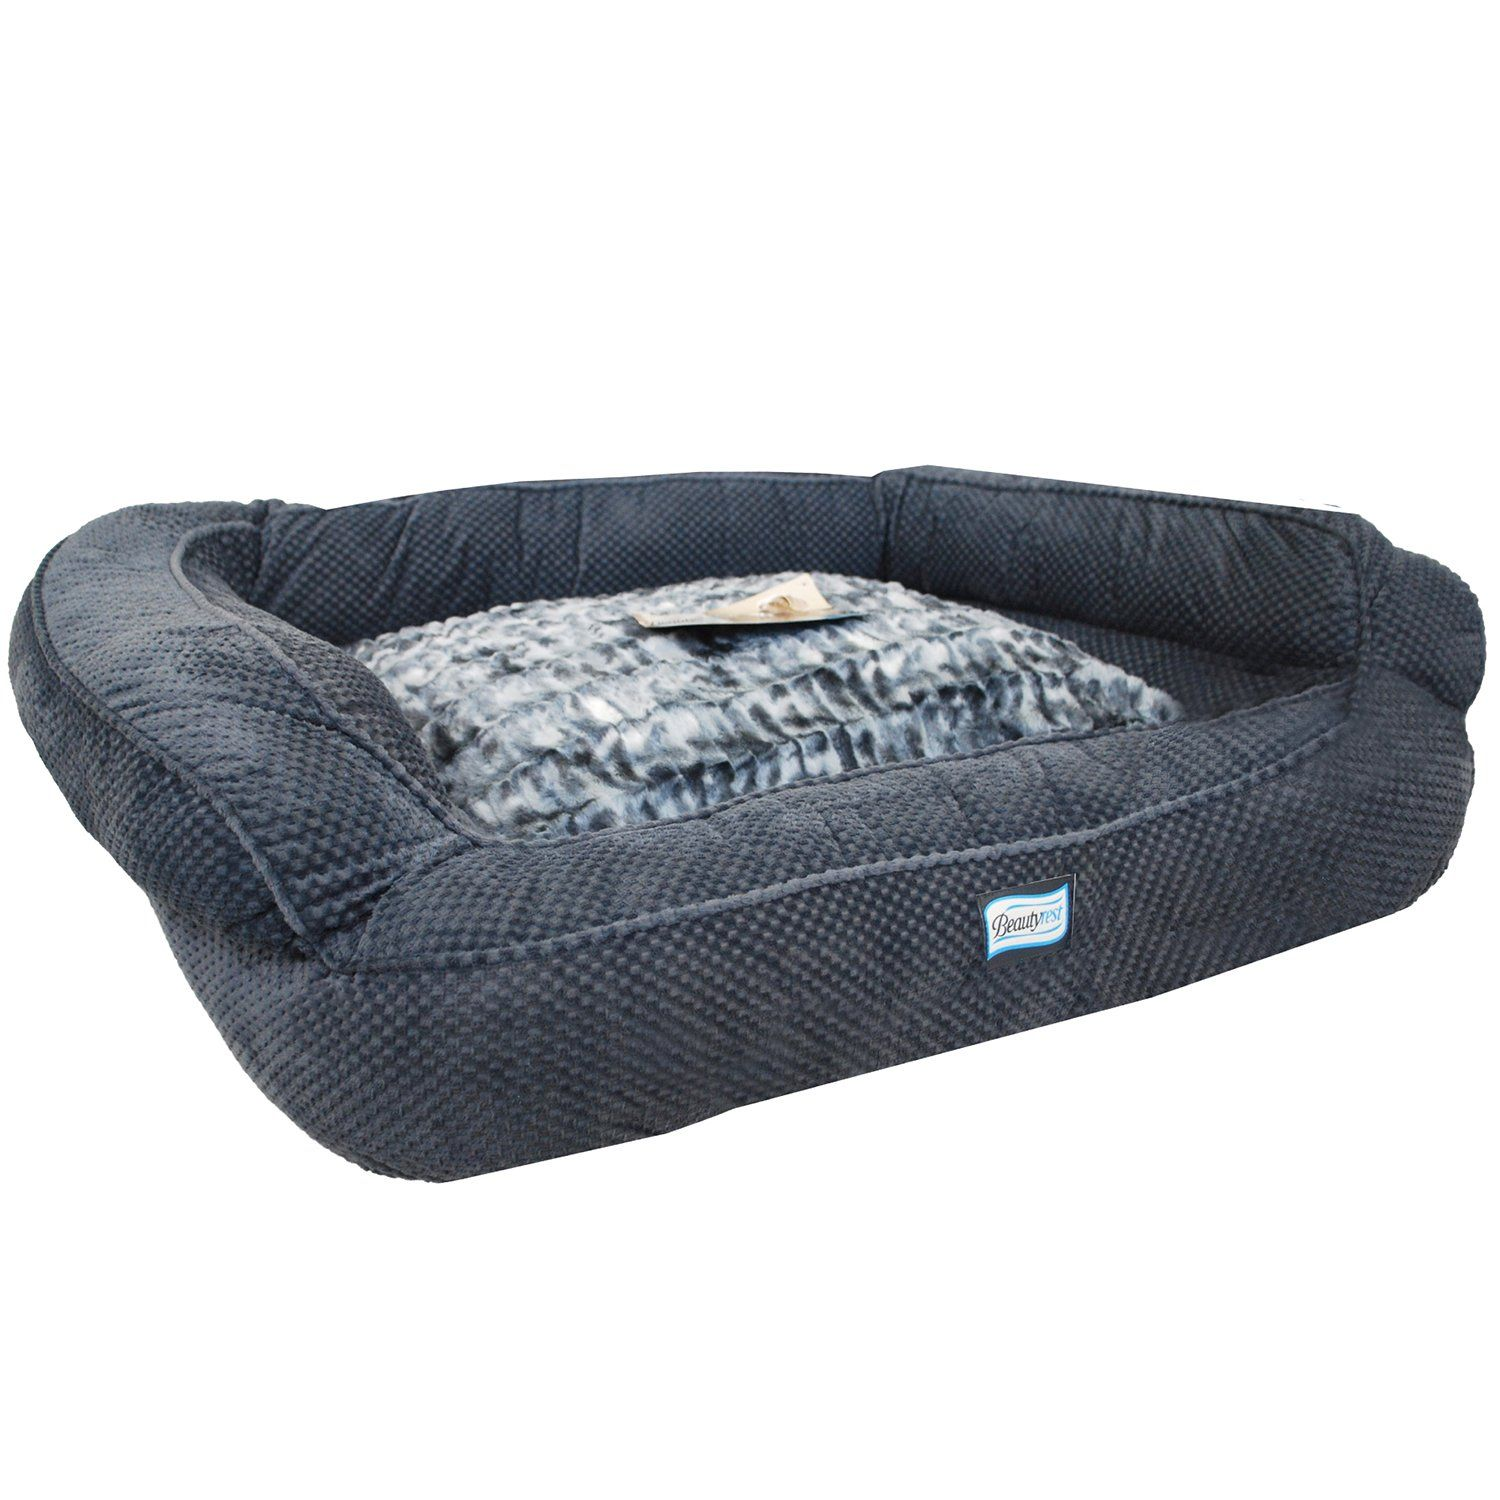 Simmons Beautyrest Colossal Rest Premium Dog Bed For